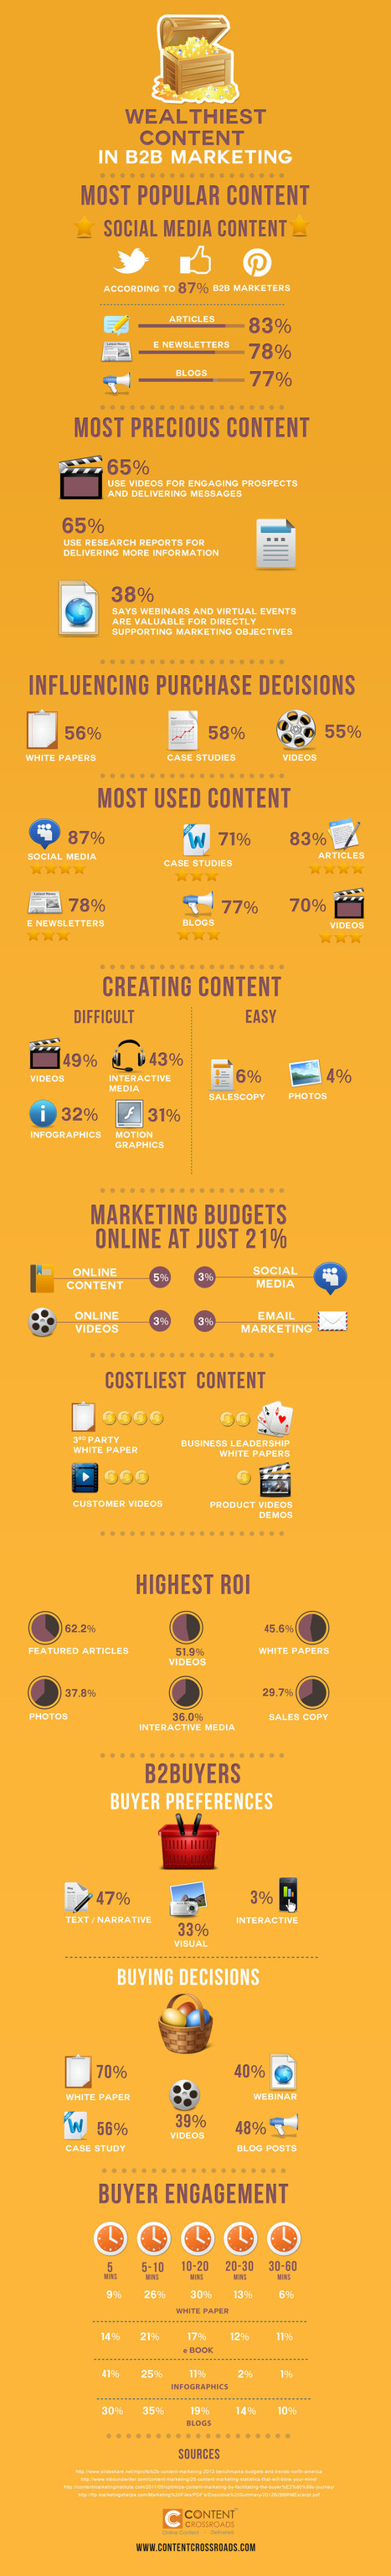 The Most Profitable Content in B2B Marketing [Infographic] | B2B Website Design | Scoop.it